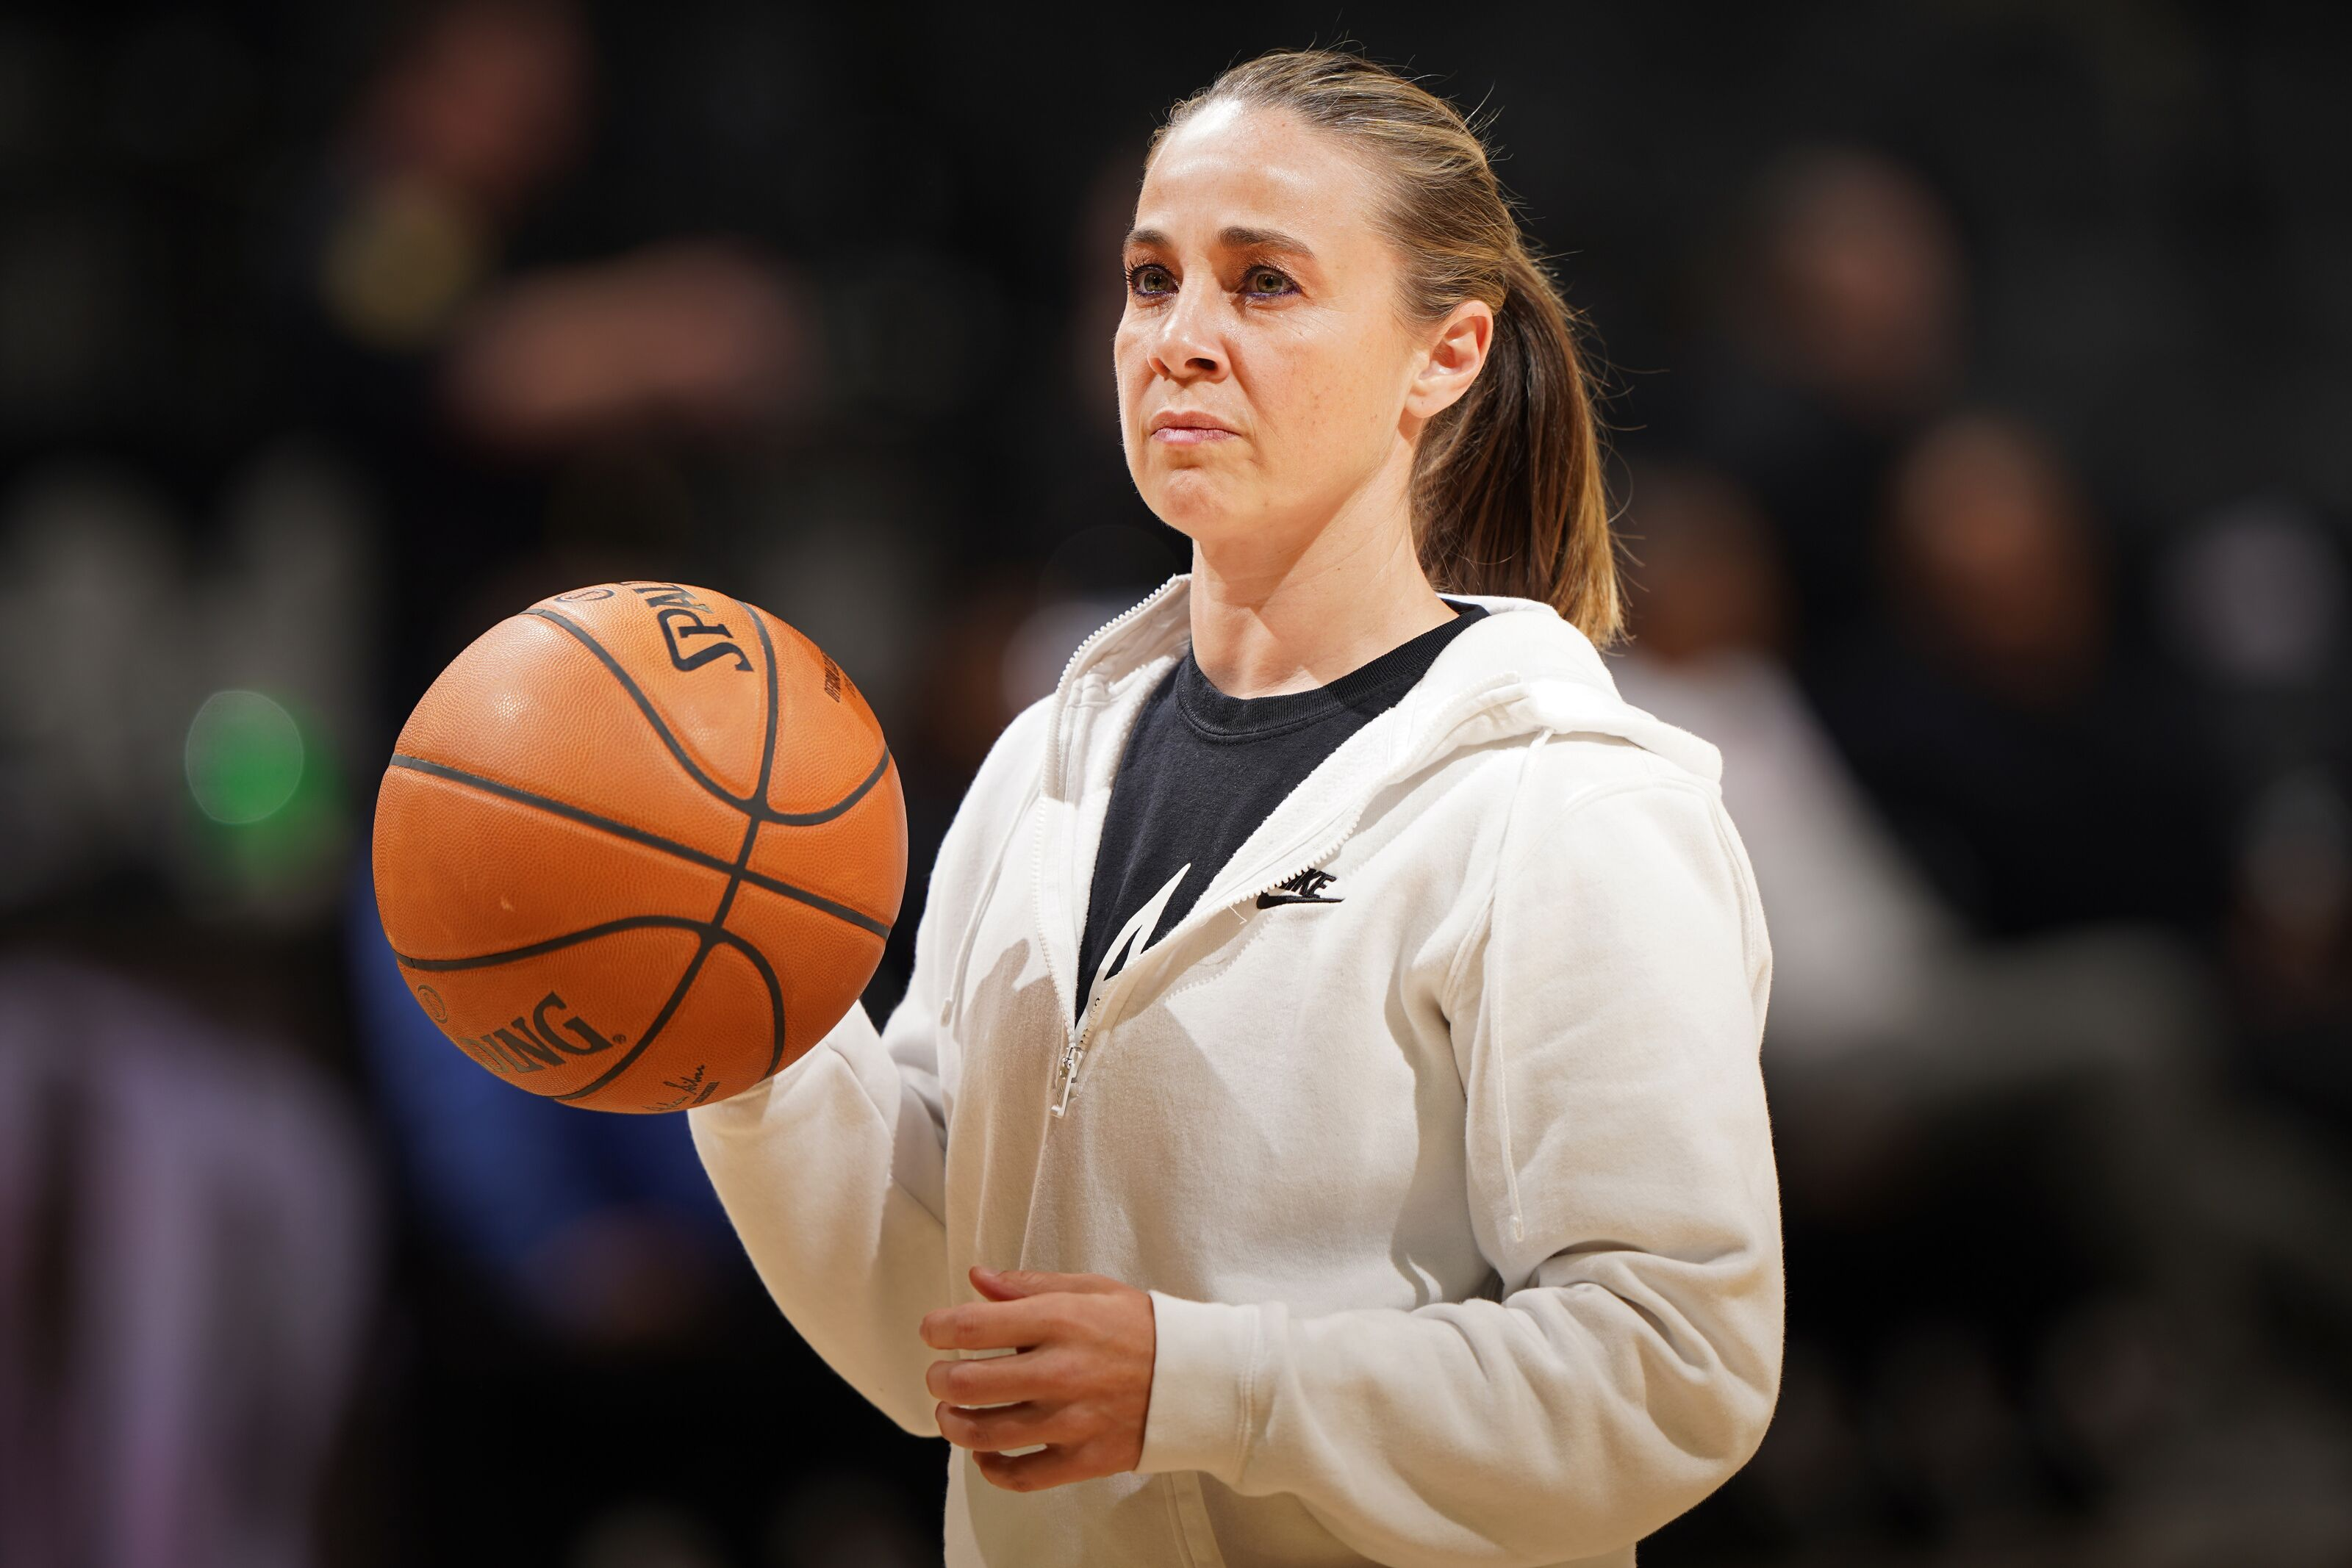 Becky Hammon is interested in New York Knicks job after Fizdale firing